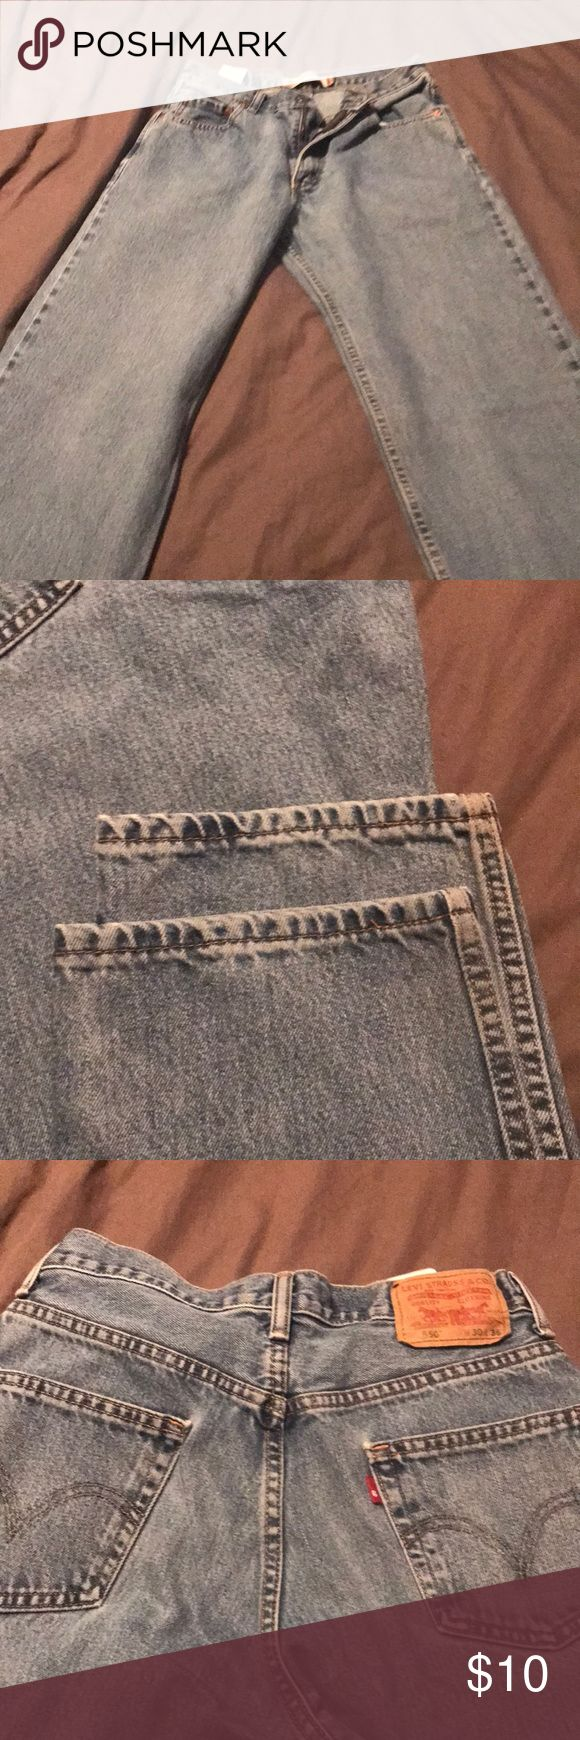 Levi's jeans 550 Up for sale is a pair of Levi's 550 in good condition 30 x 36 Levi's Jeans Relaxed